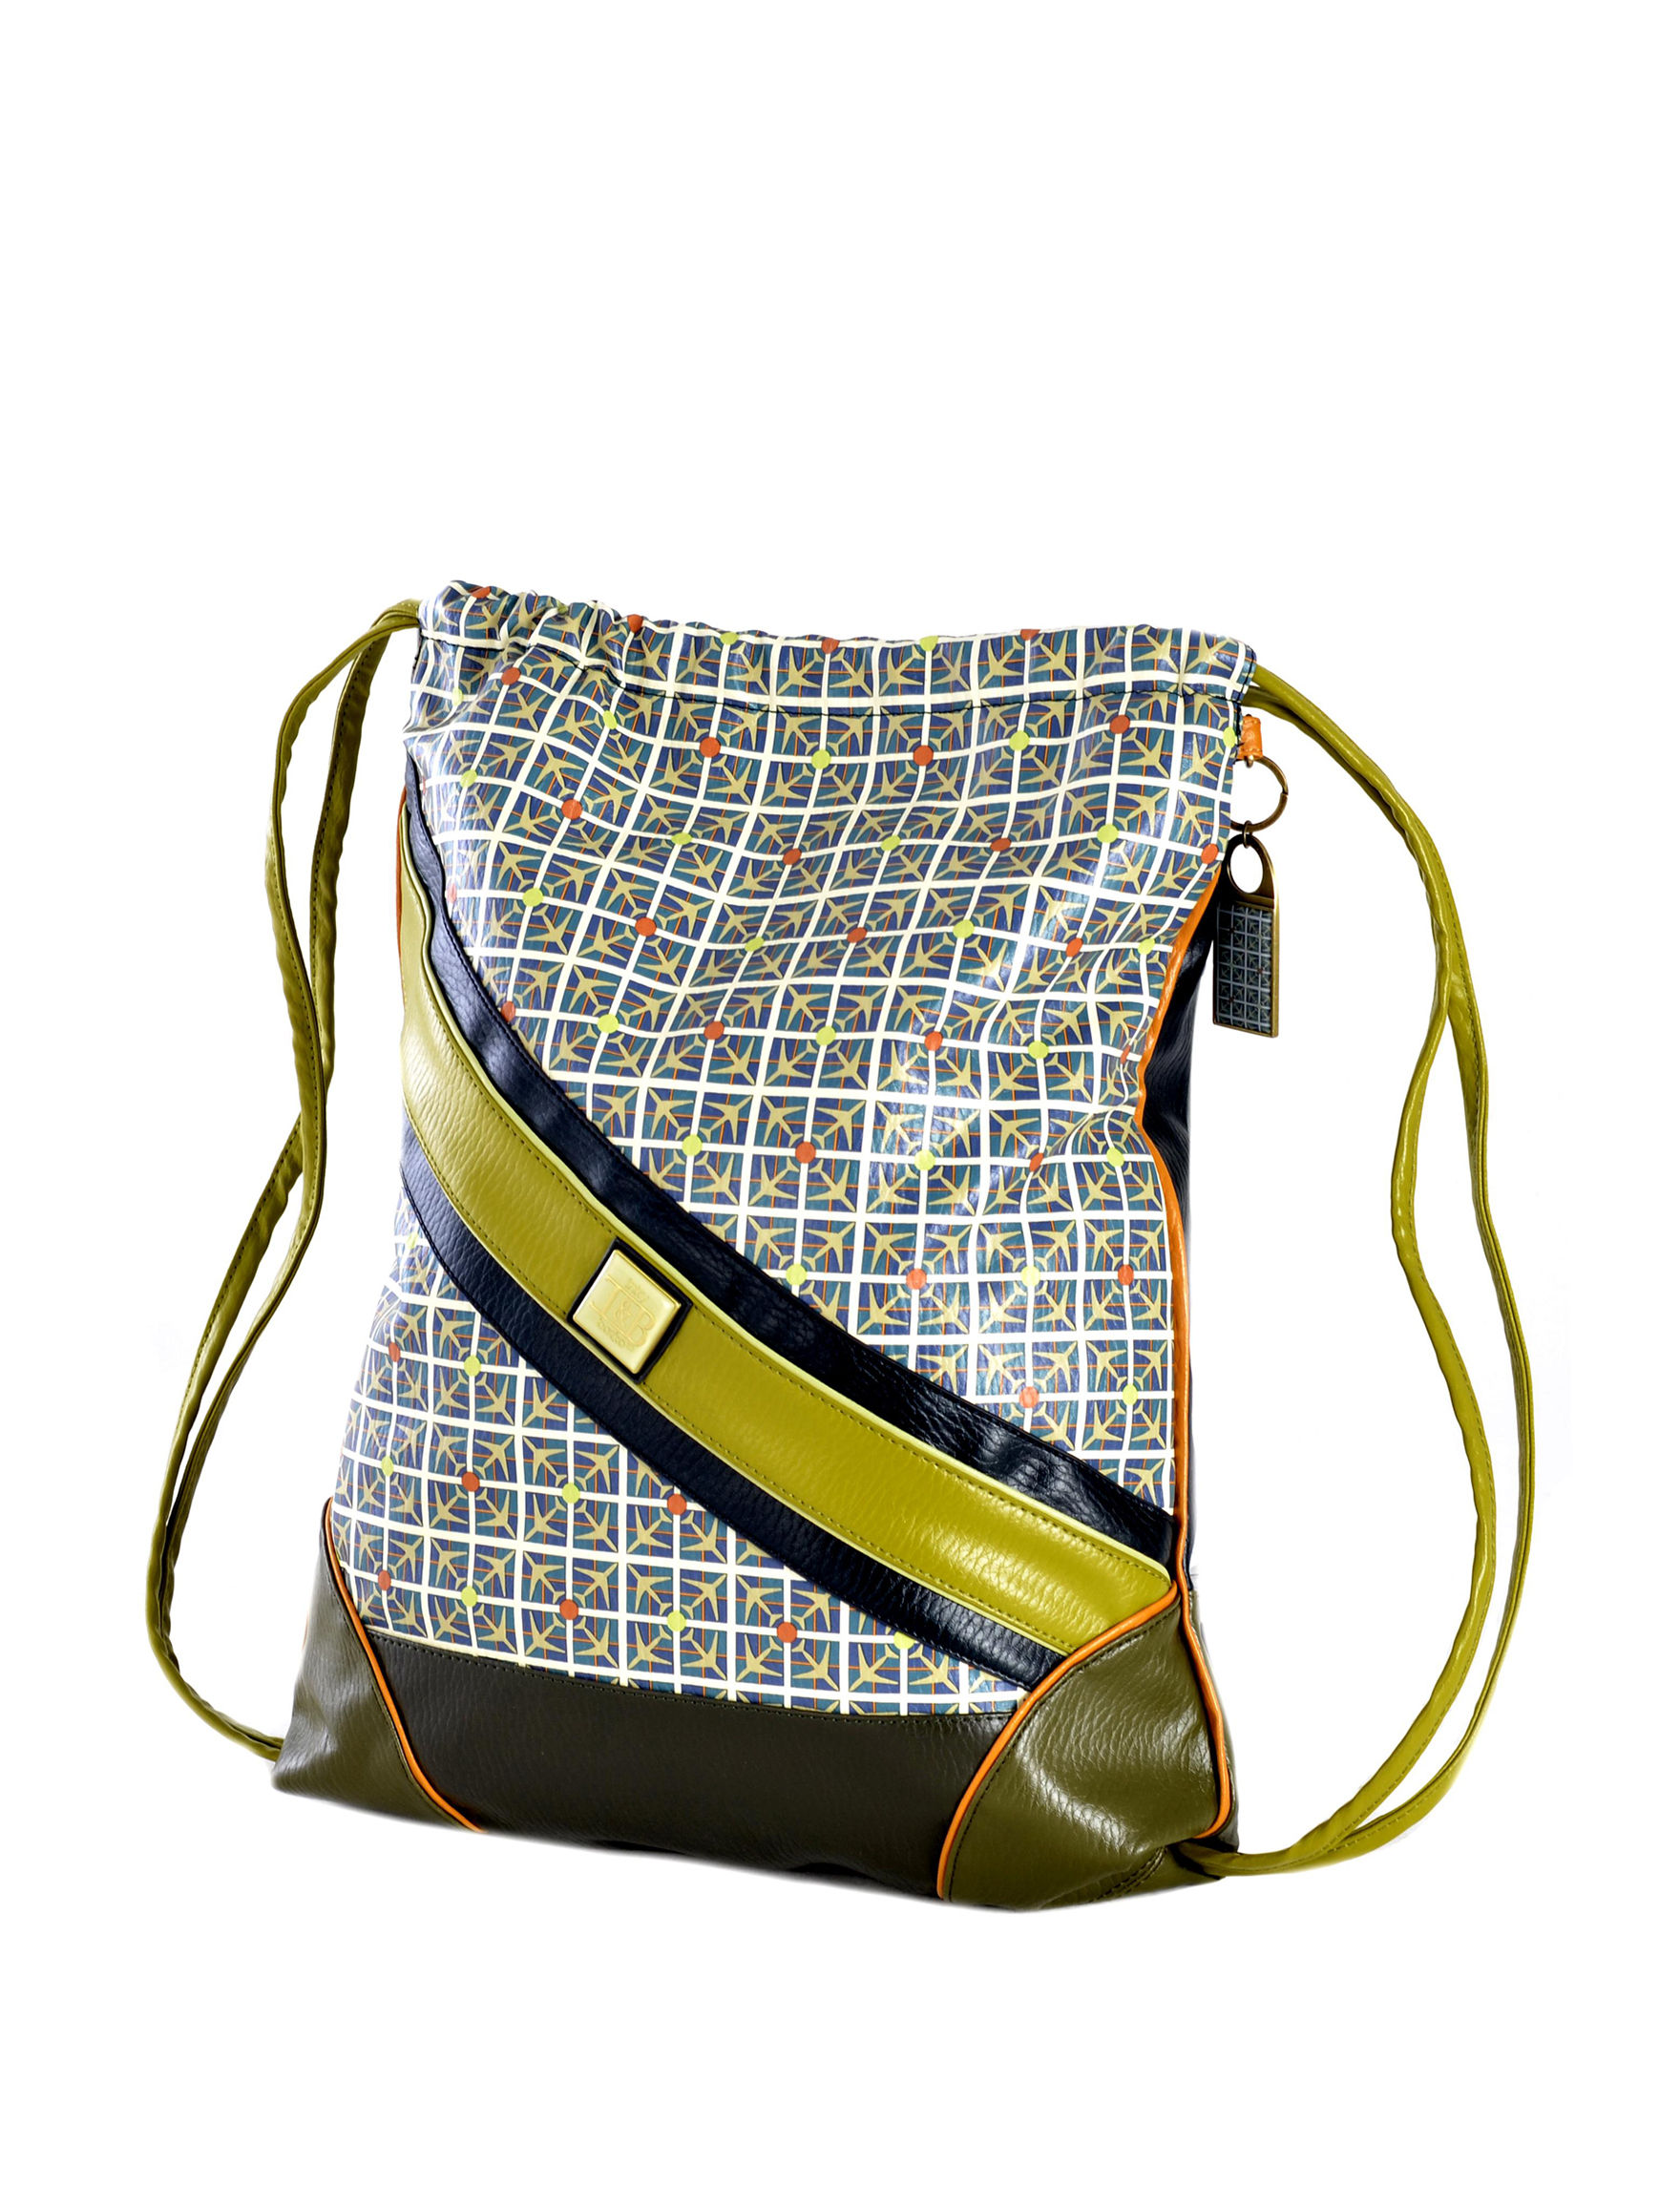 Inky & Bozko Orange/ Blue/ Green Bookbags & Backpacks Fanny Packs & Drawstring Bags Weekend Bags